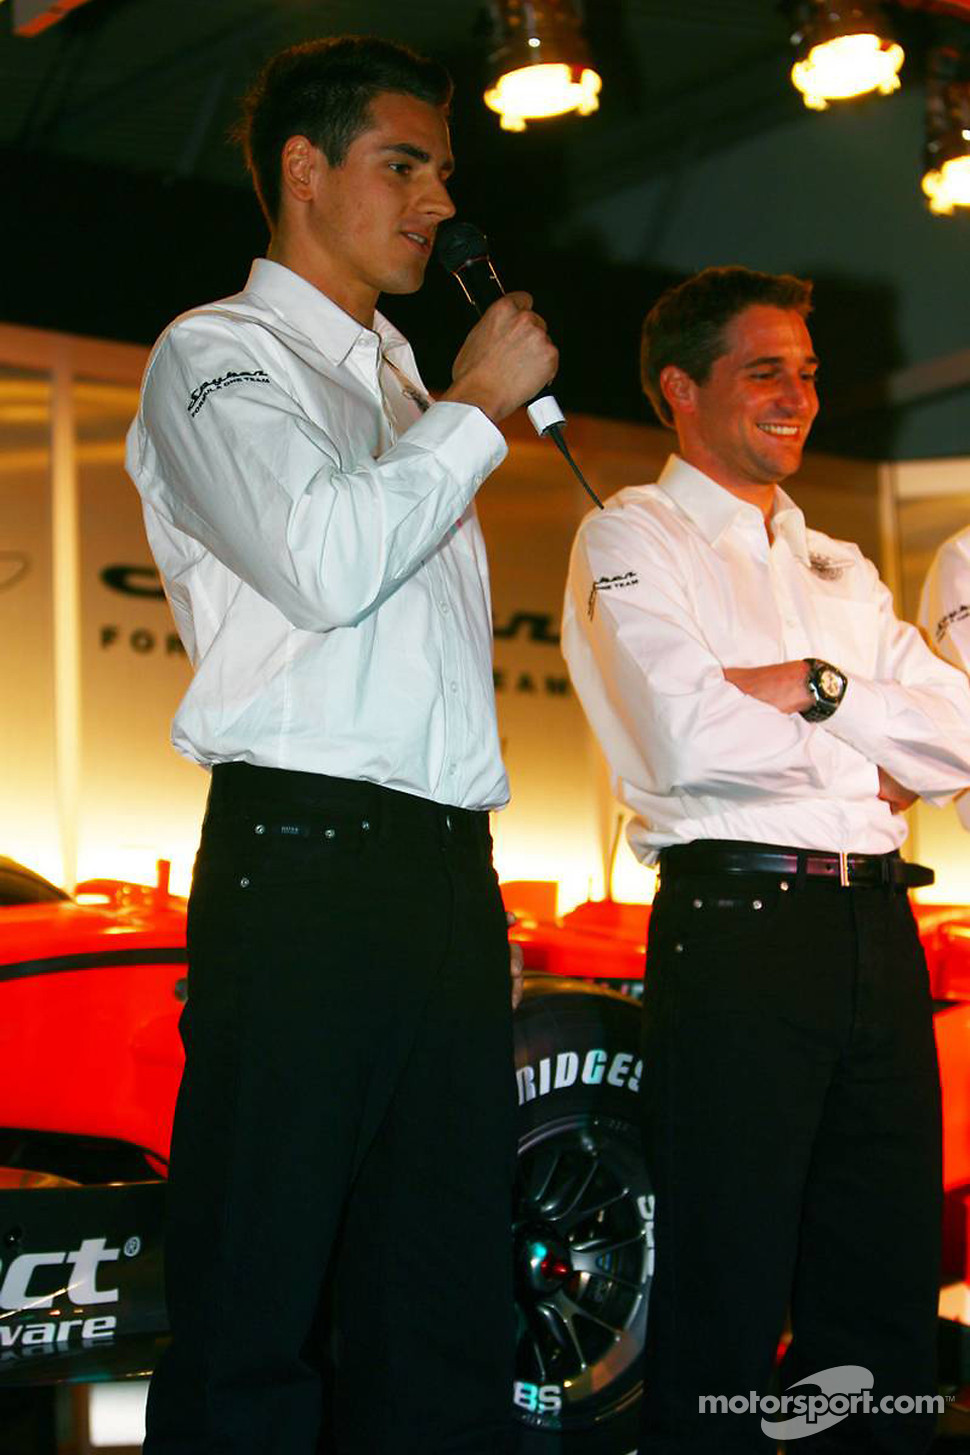 Adrian Sutil and Christijan Albers